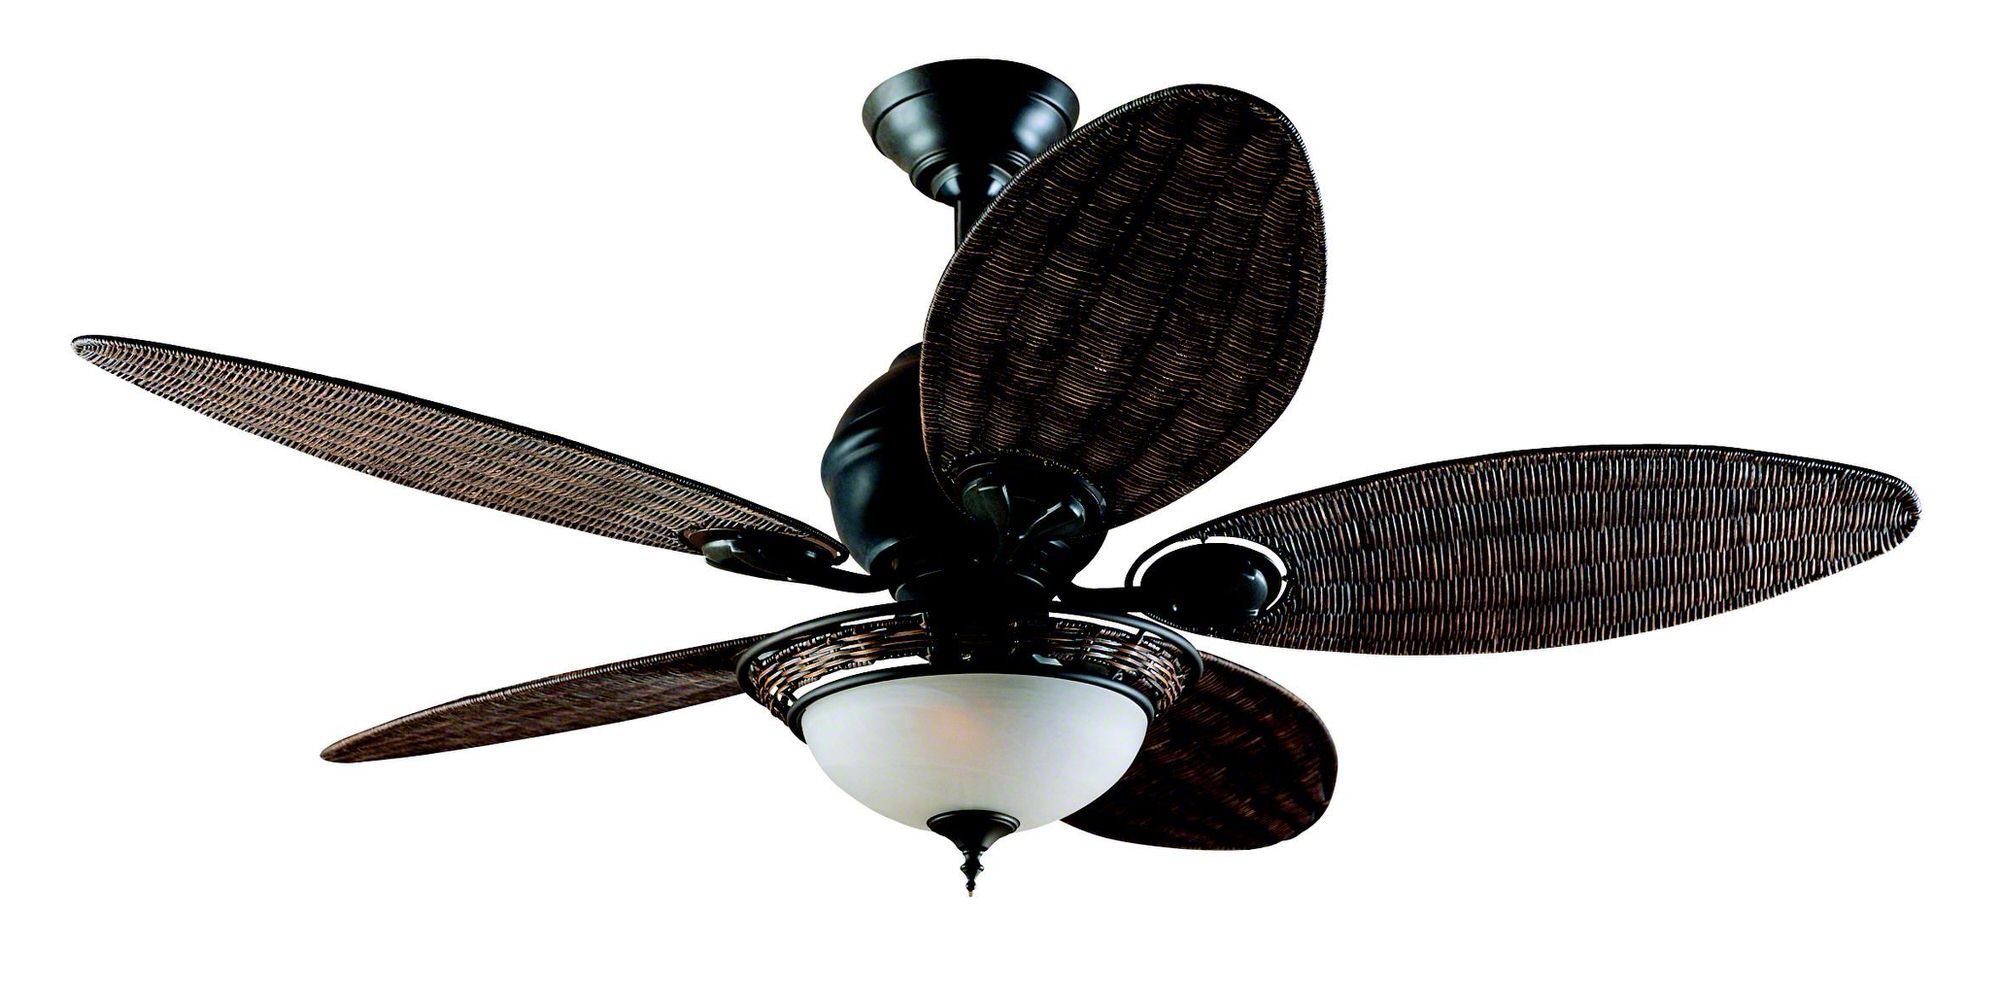 of control com lowes dazzling fan inspirations size with indoor remote fans photos fanht full at shop lights hunter ceiling and withhts light